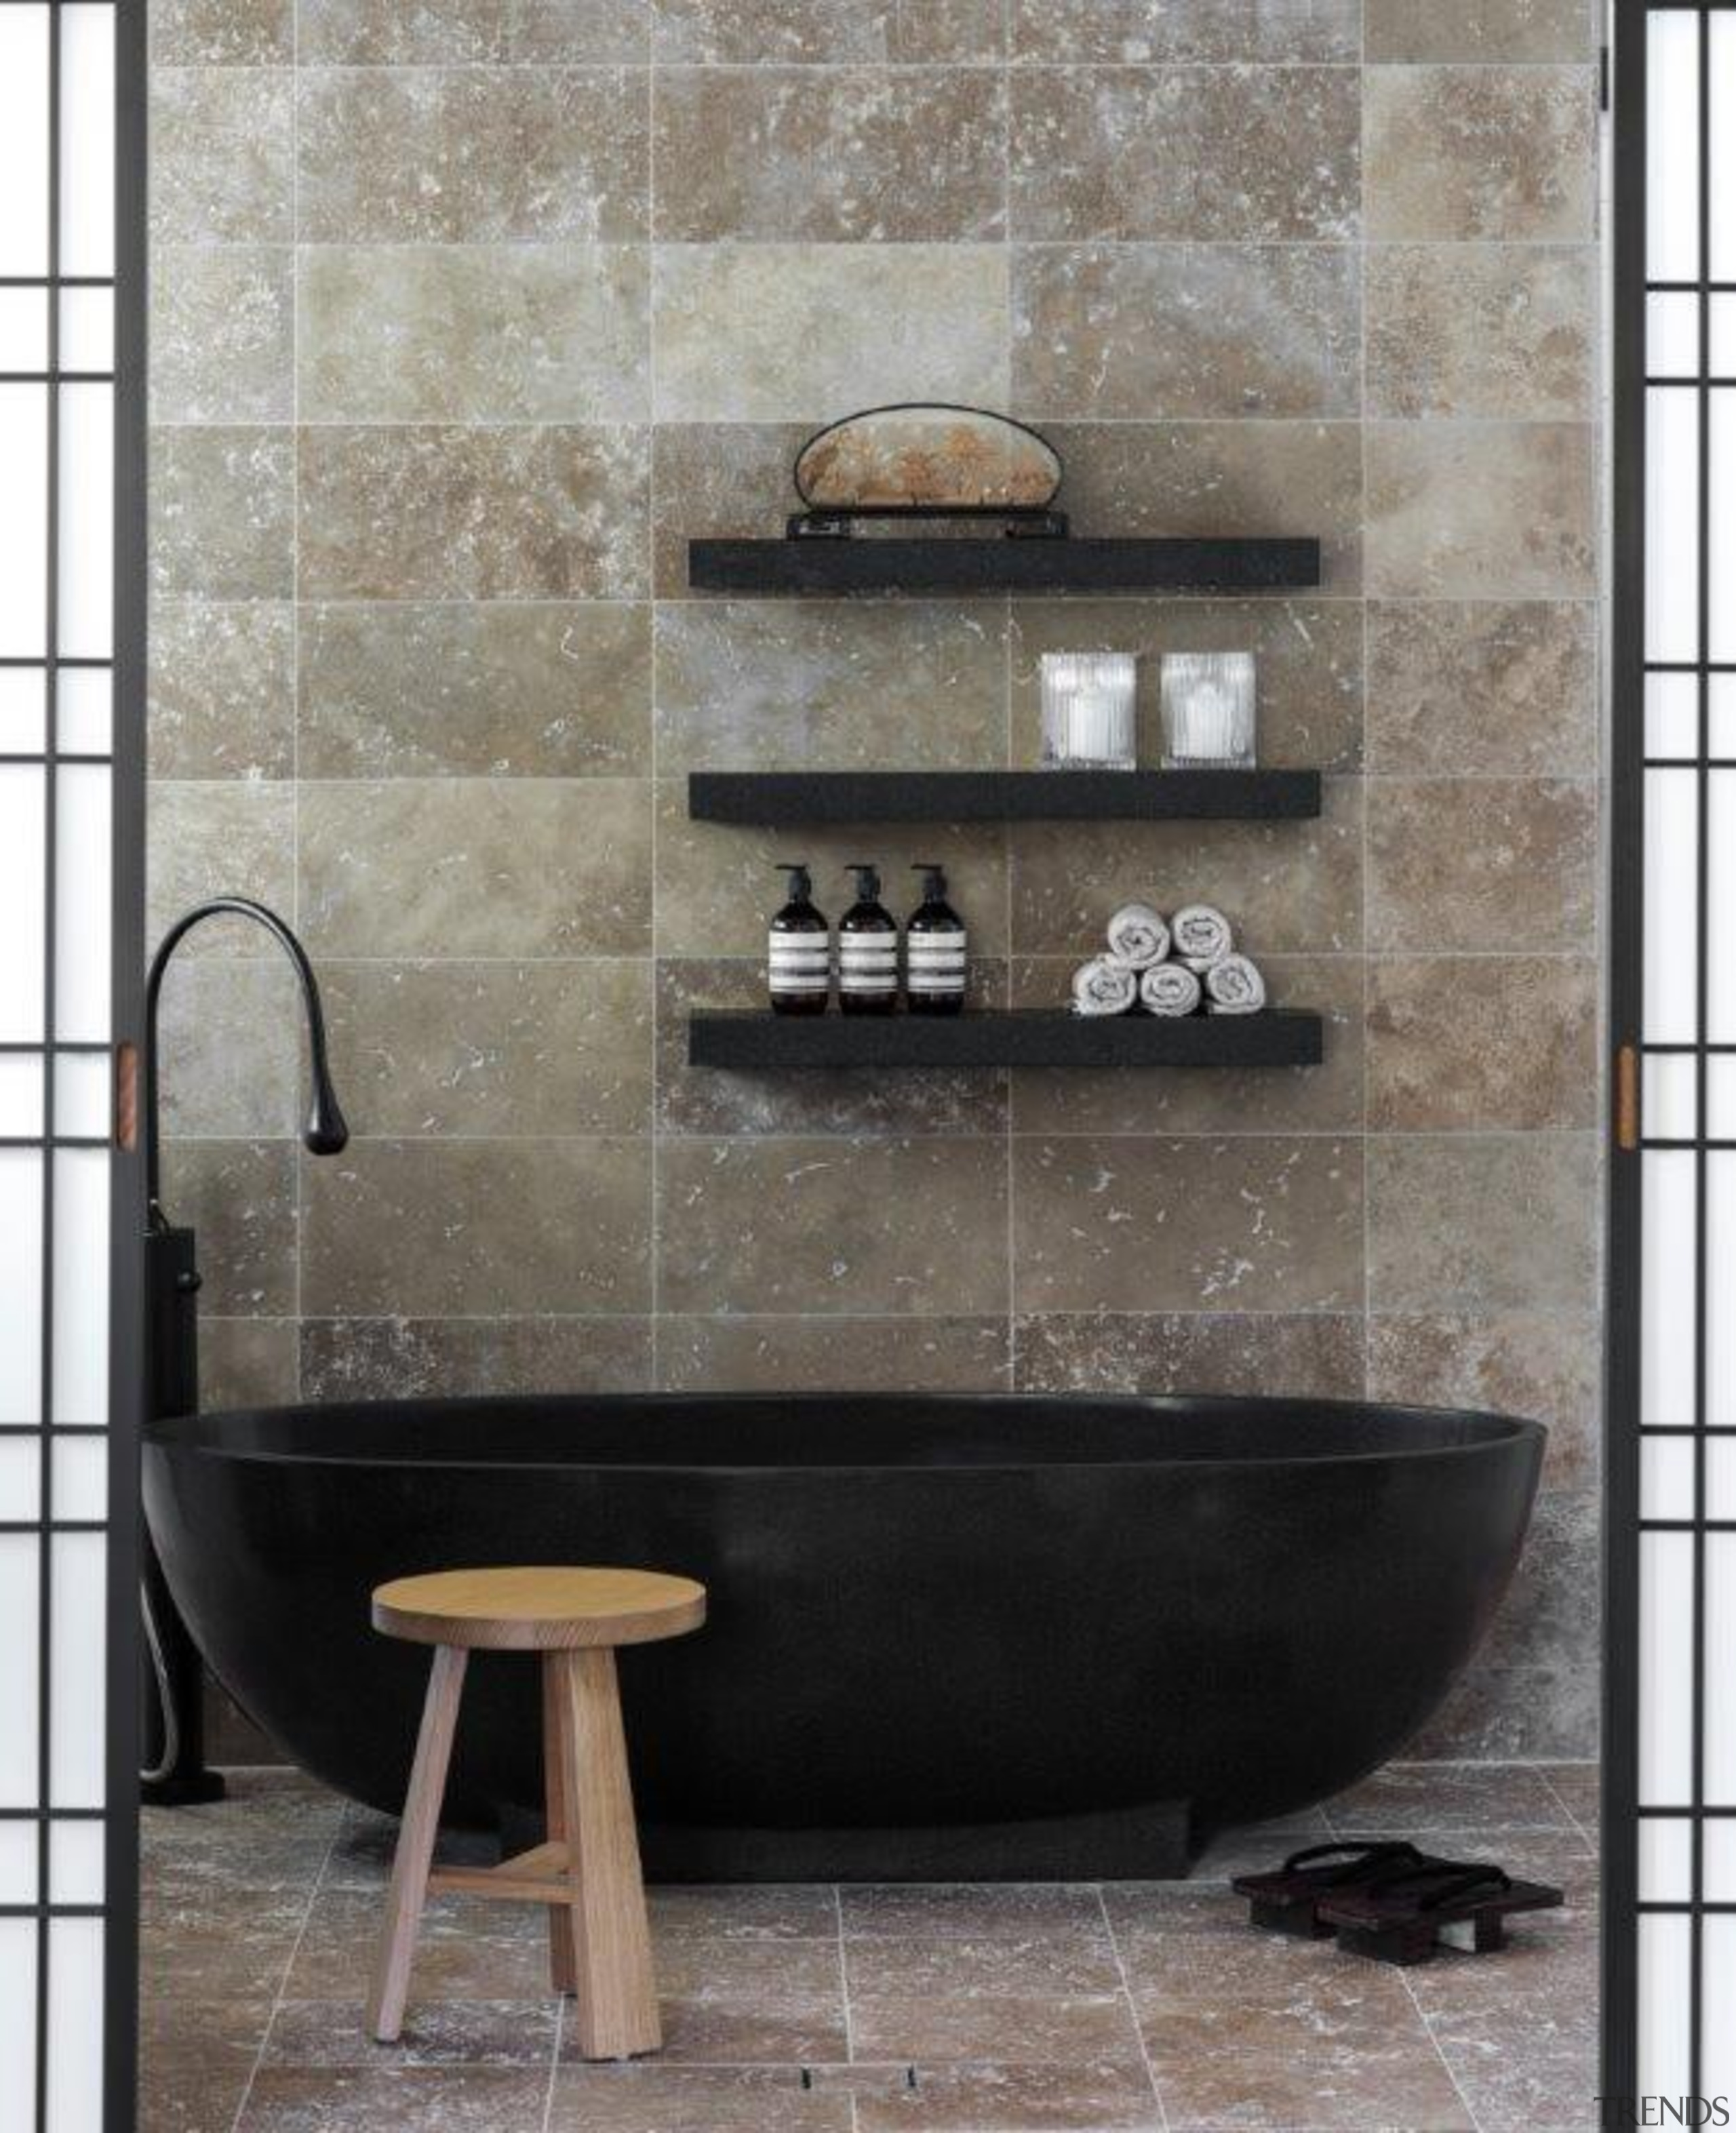 If you seek a perfect bathing experience, where bathroom, ceramic, floor, flooring, interior design, plumbing fixture, sink, tap, tile, wall, gray, black